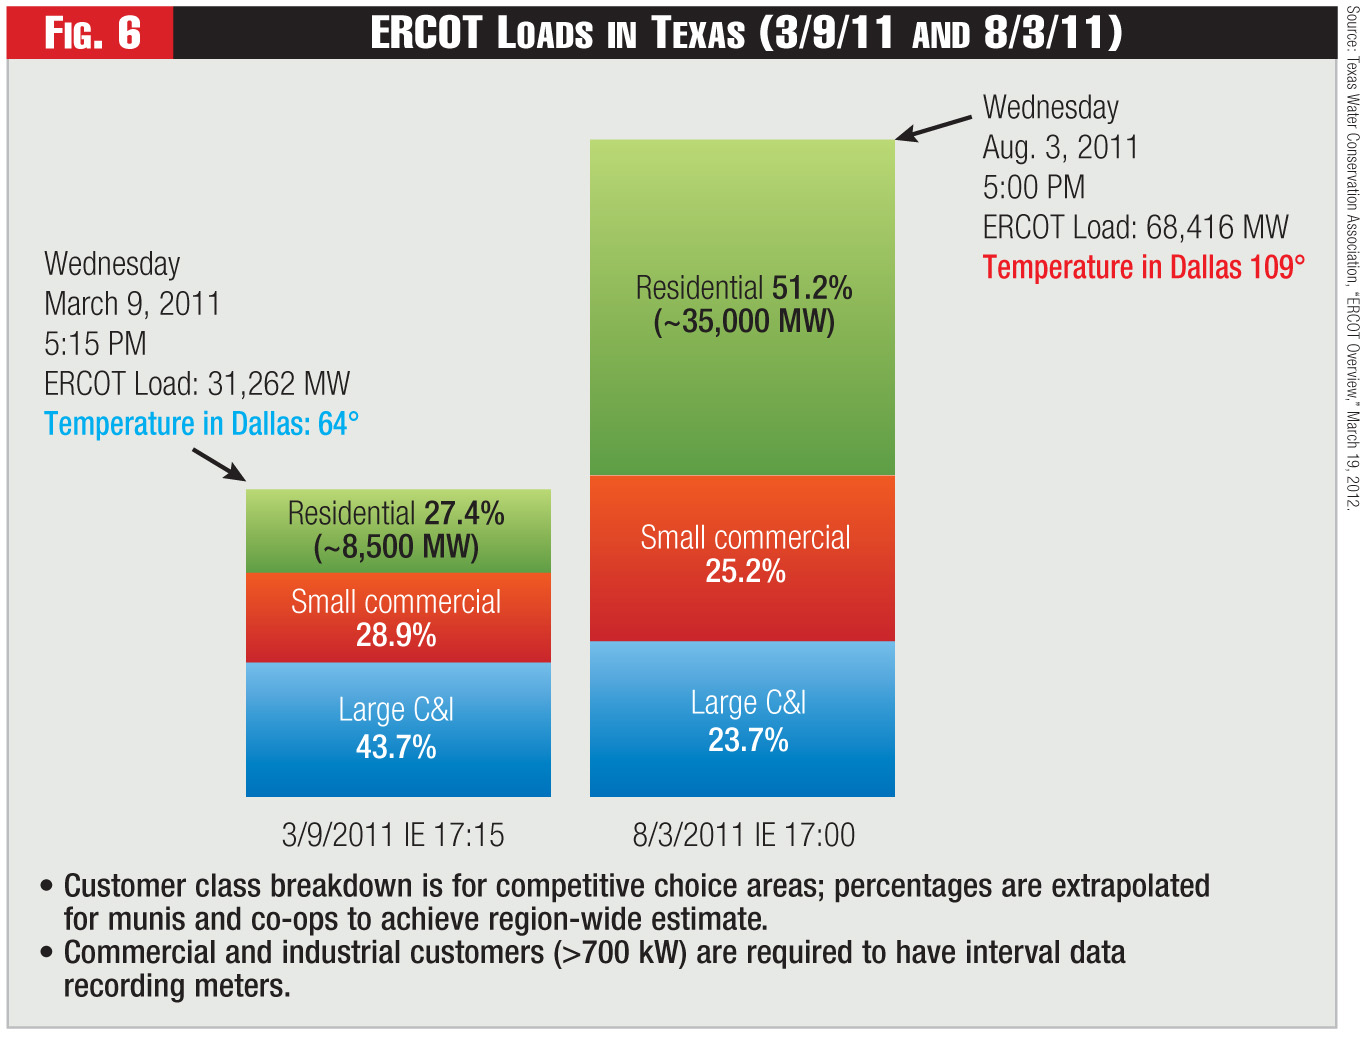 Figure 6 - ERCOT Loads in Texas (3/9/11 and 8/3/11)